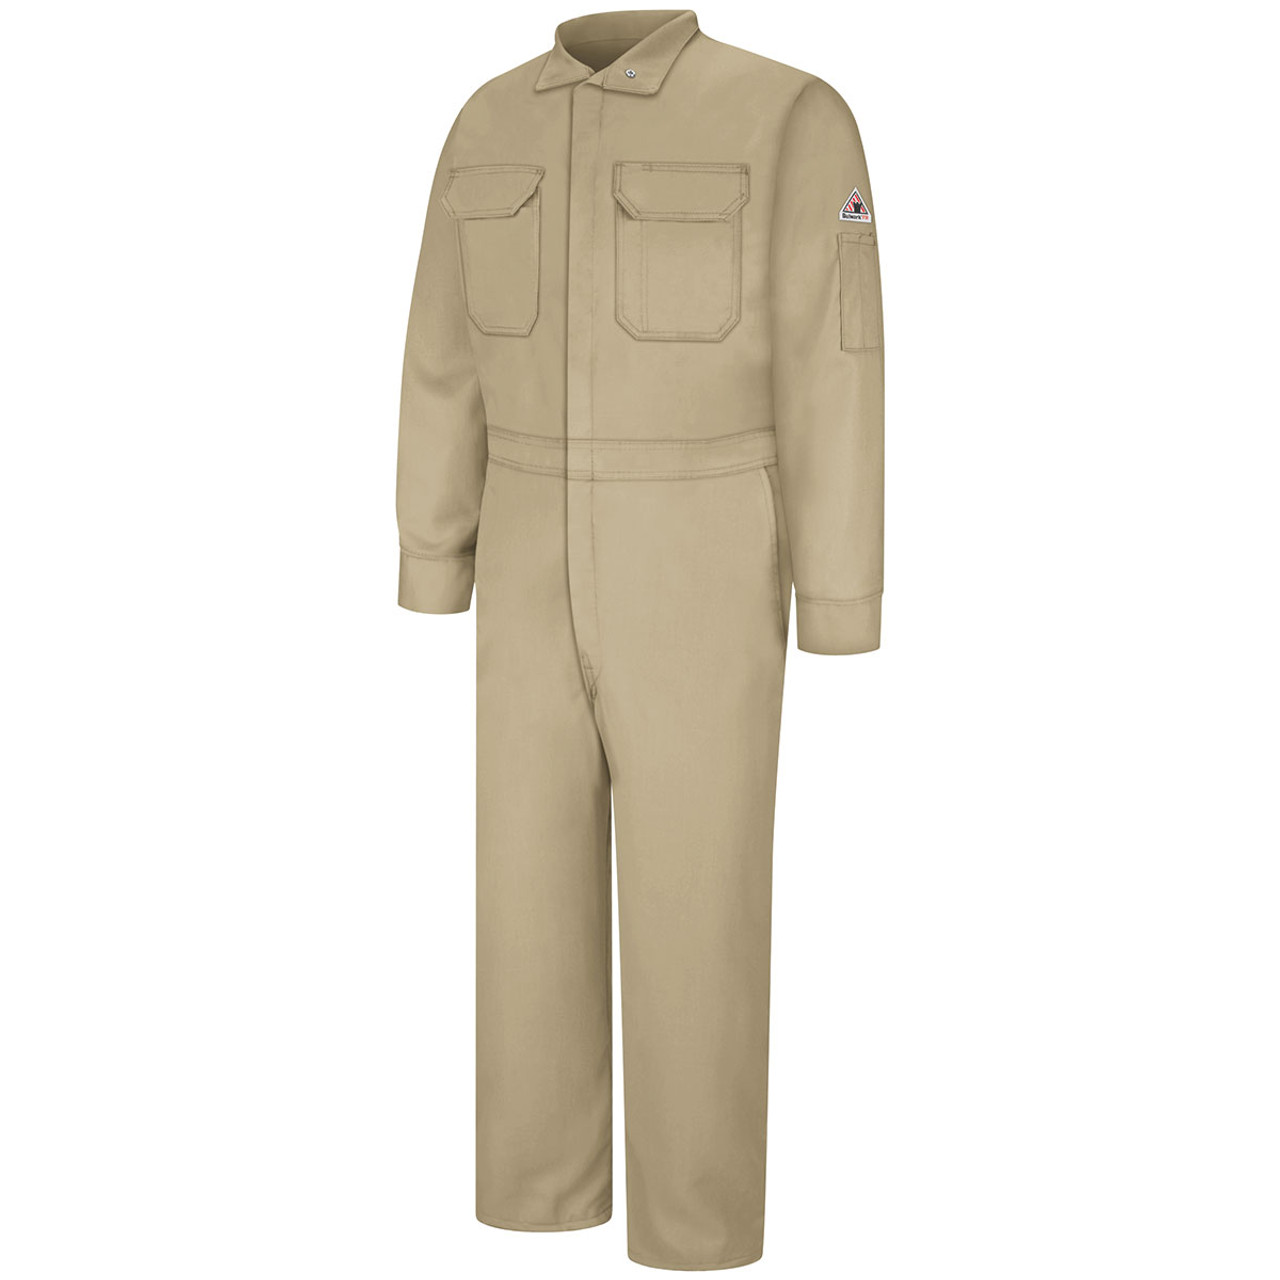 Bulwark Flame Resistant Nomex IIIA Coveralls  6 oz  CNB6 Light Material